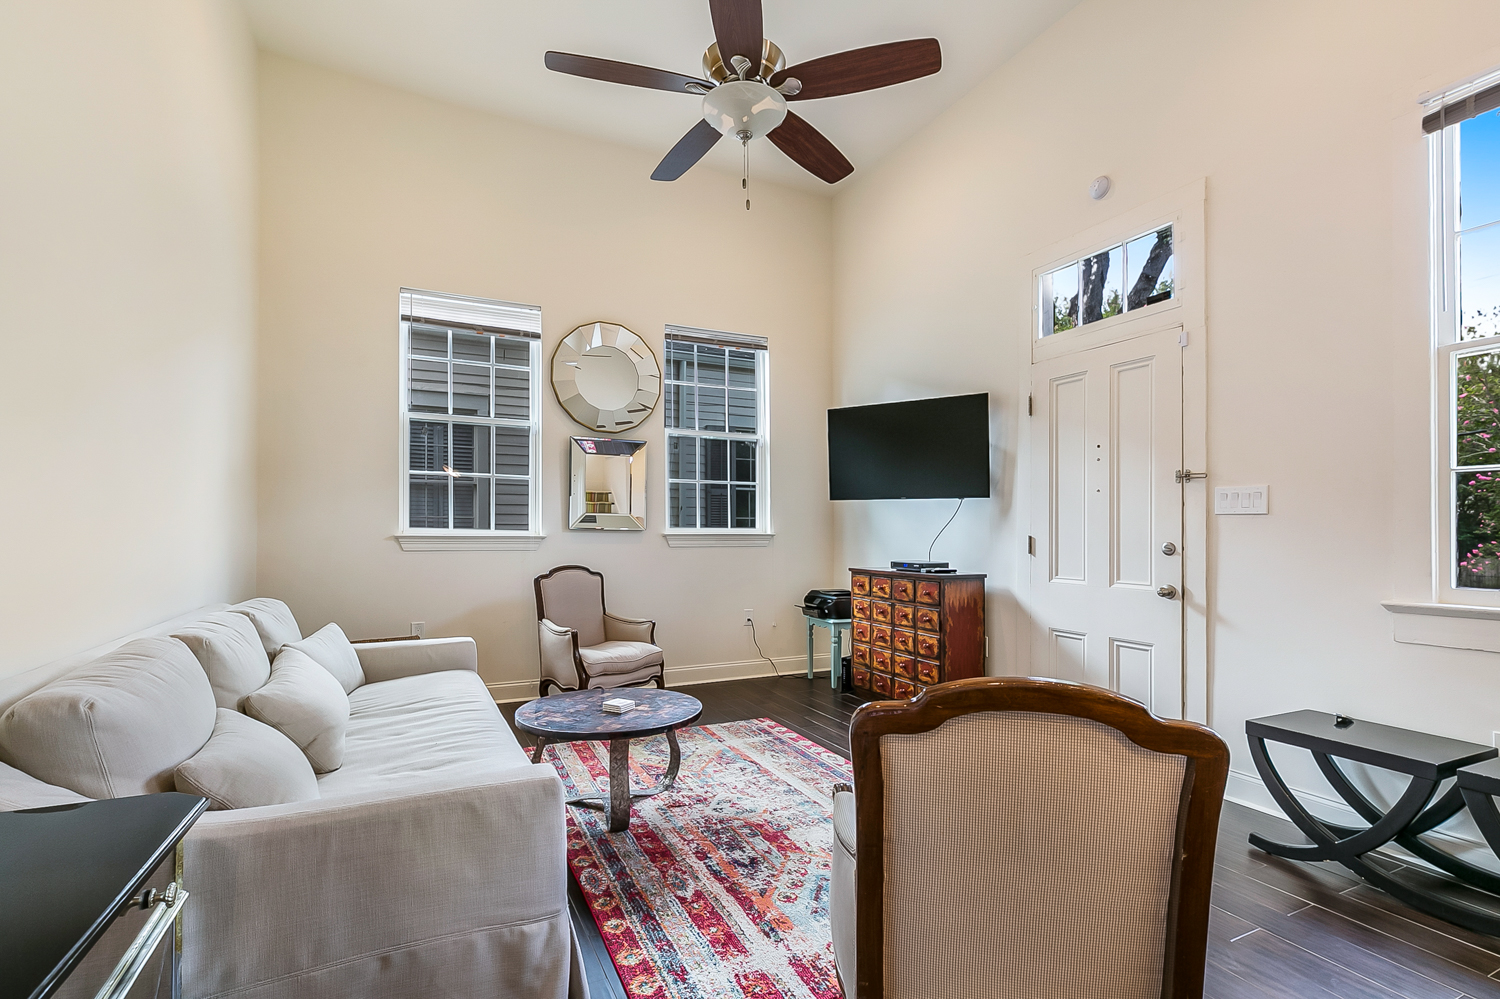 Garden District, Apartment, 1 beds, 1.0 baths, $2800 per month New Orleans Rental - devie image_2